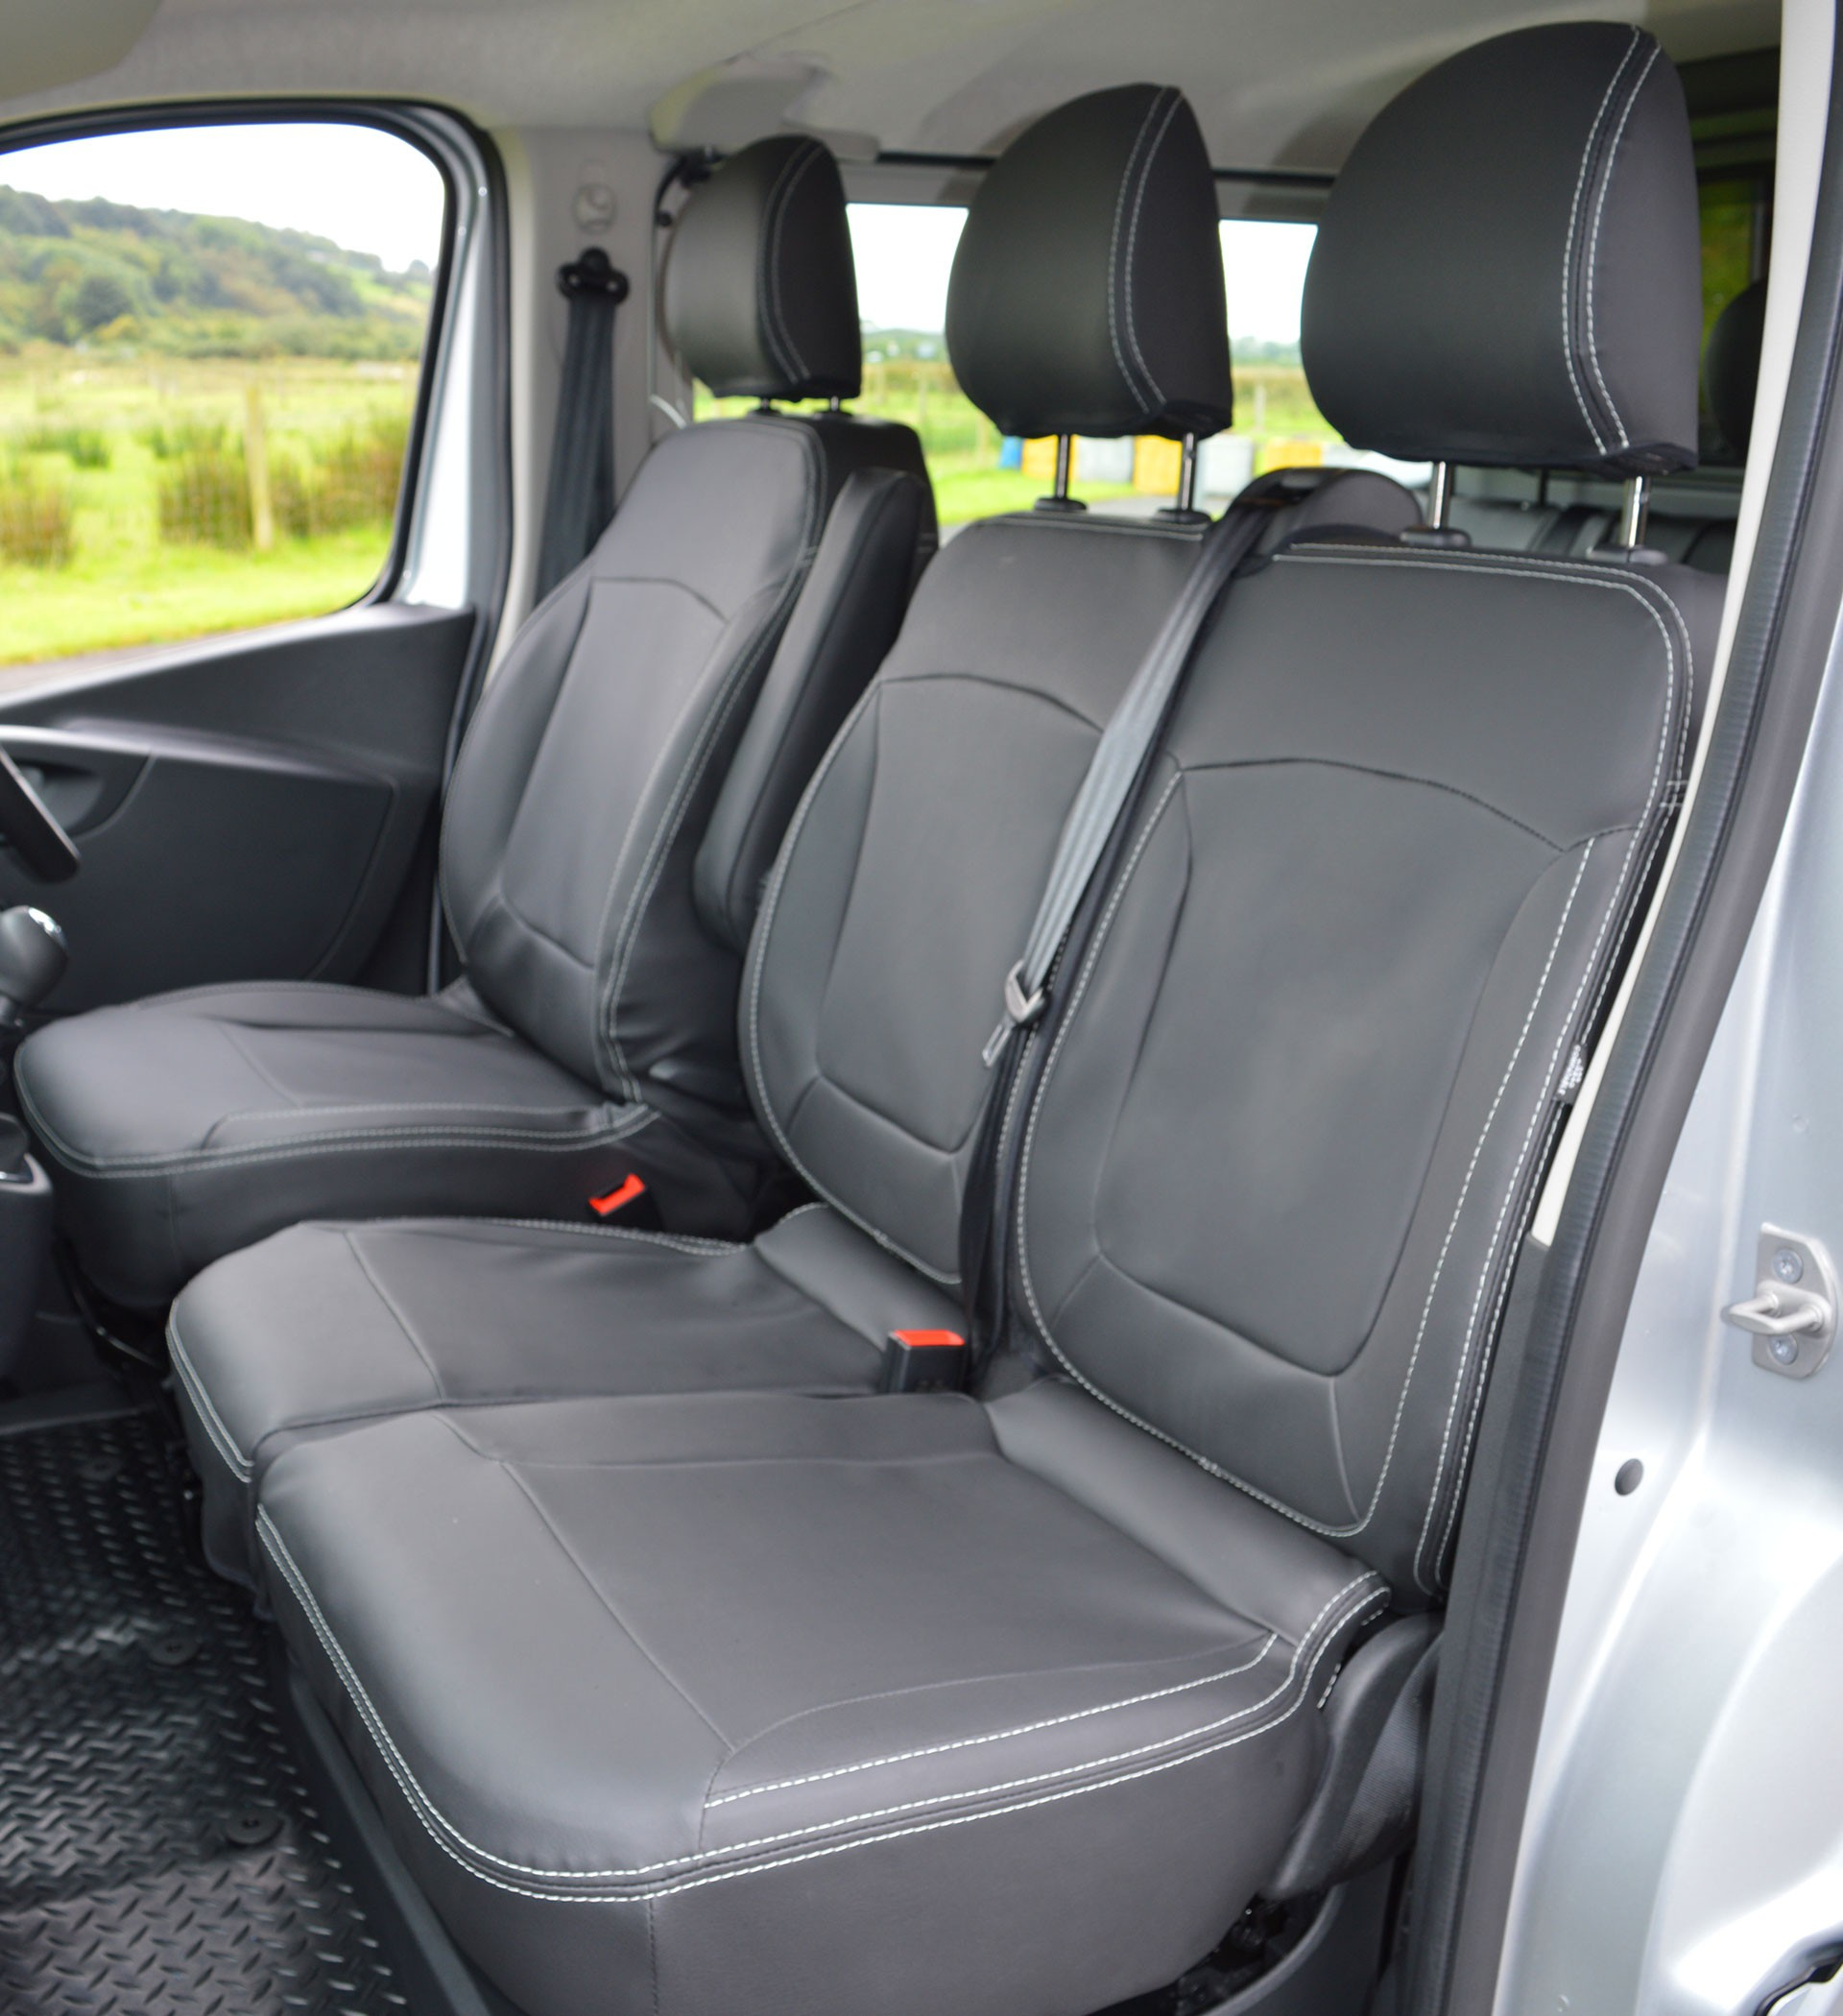 Van Seat Covers >> Vauxhall Vivaro Leather Look Double Cab Seat Covers - Charcoal